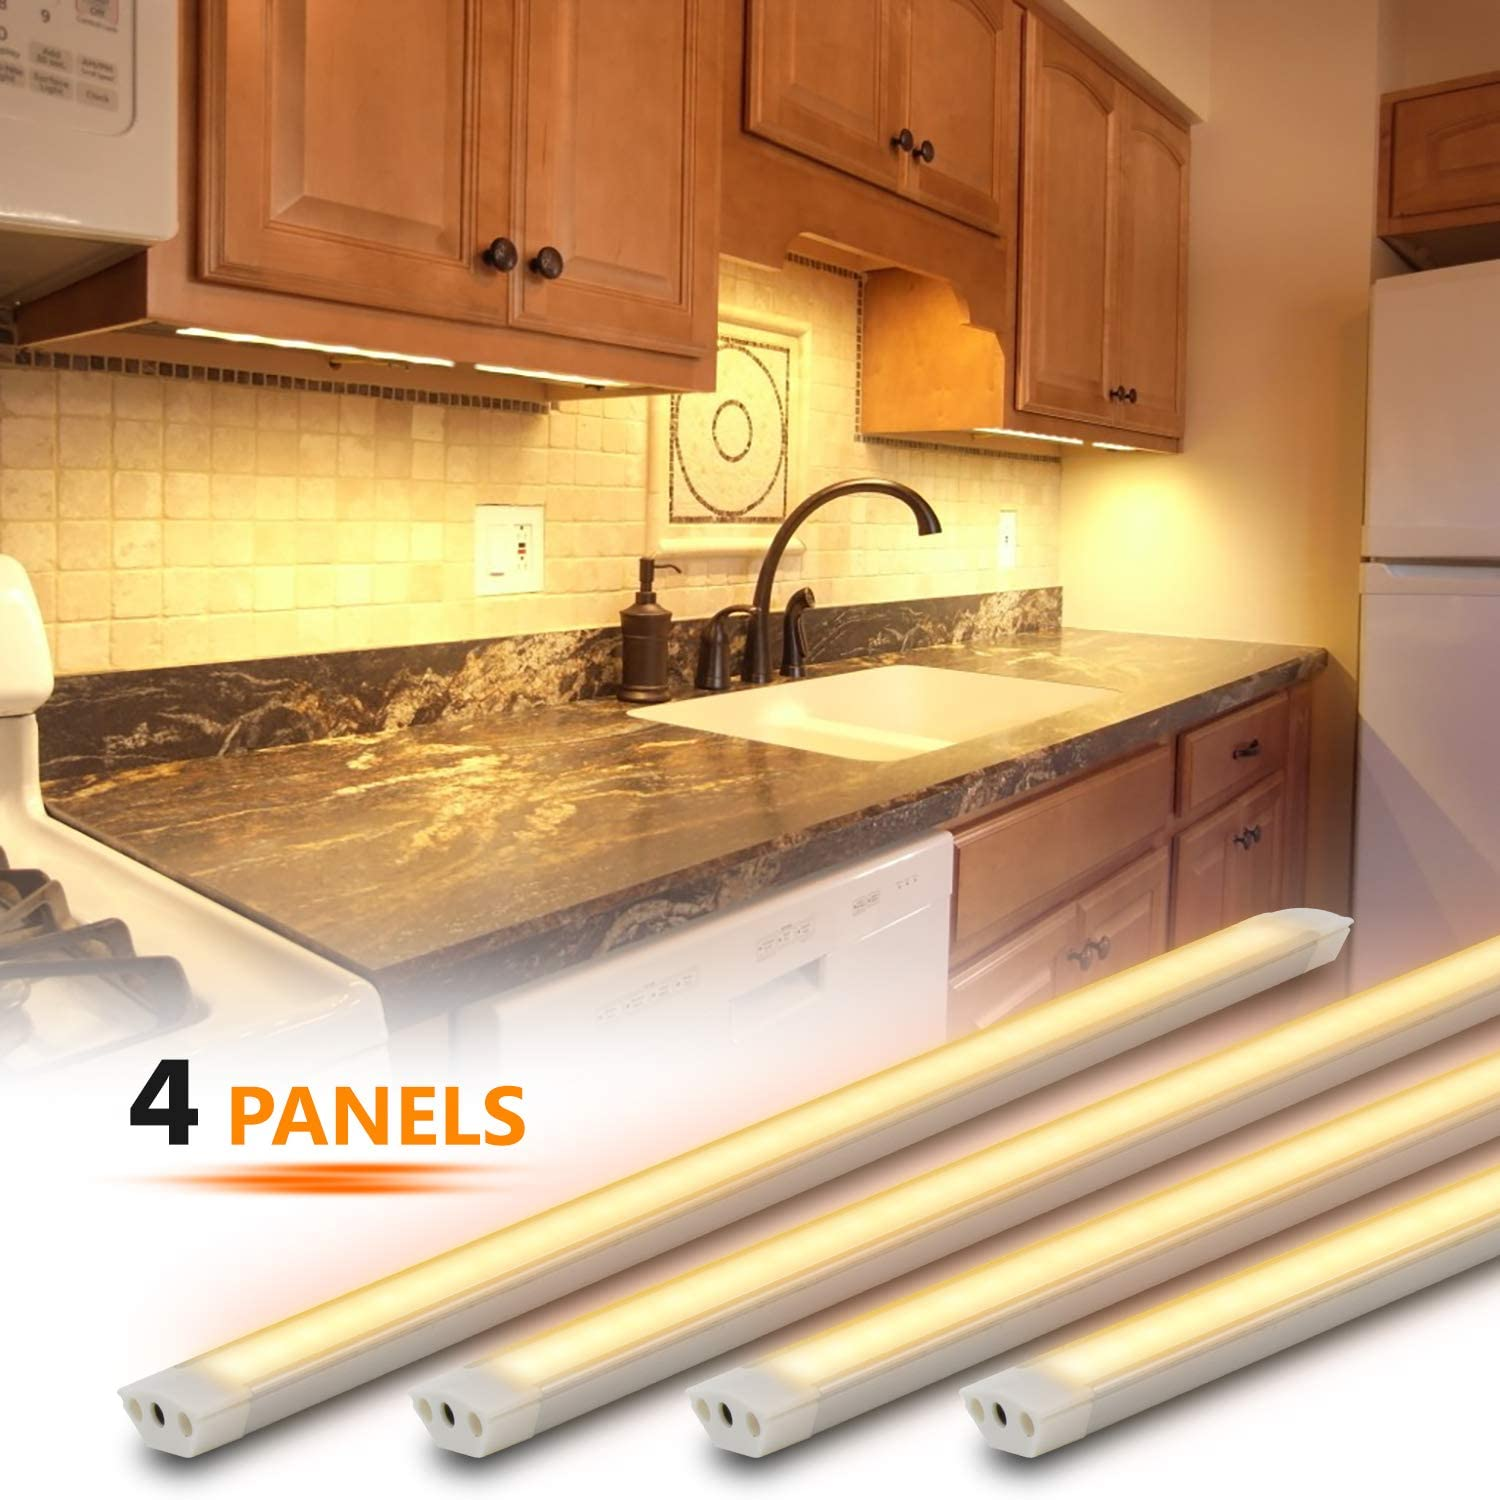 Under Cabinet Lighting Kit, 4pcs 12 Inches Under Counter Lights, 12W 840 Lumens Dimmable LED Kitchen Cabinet Strip Lights, Warm Light(3000K)